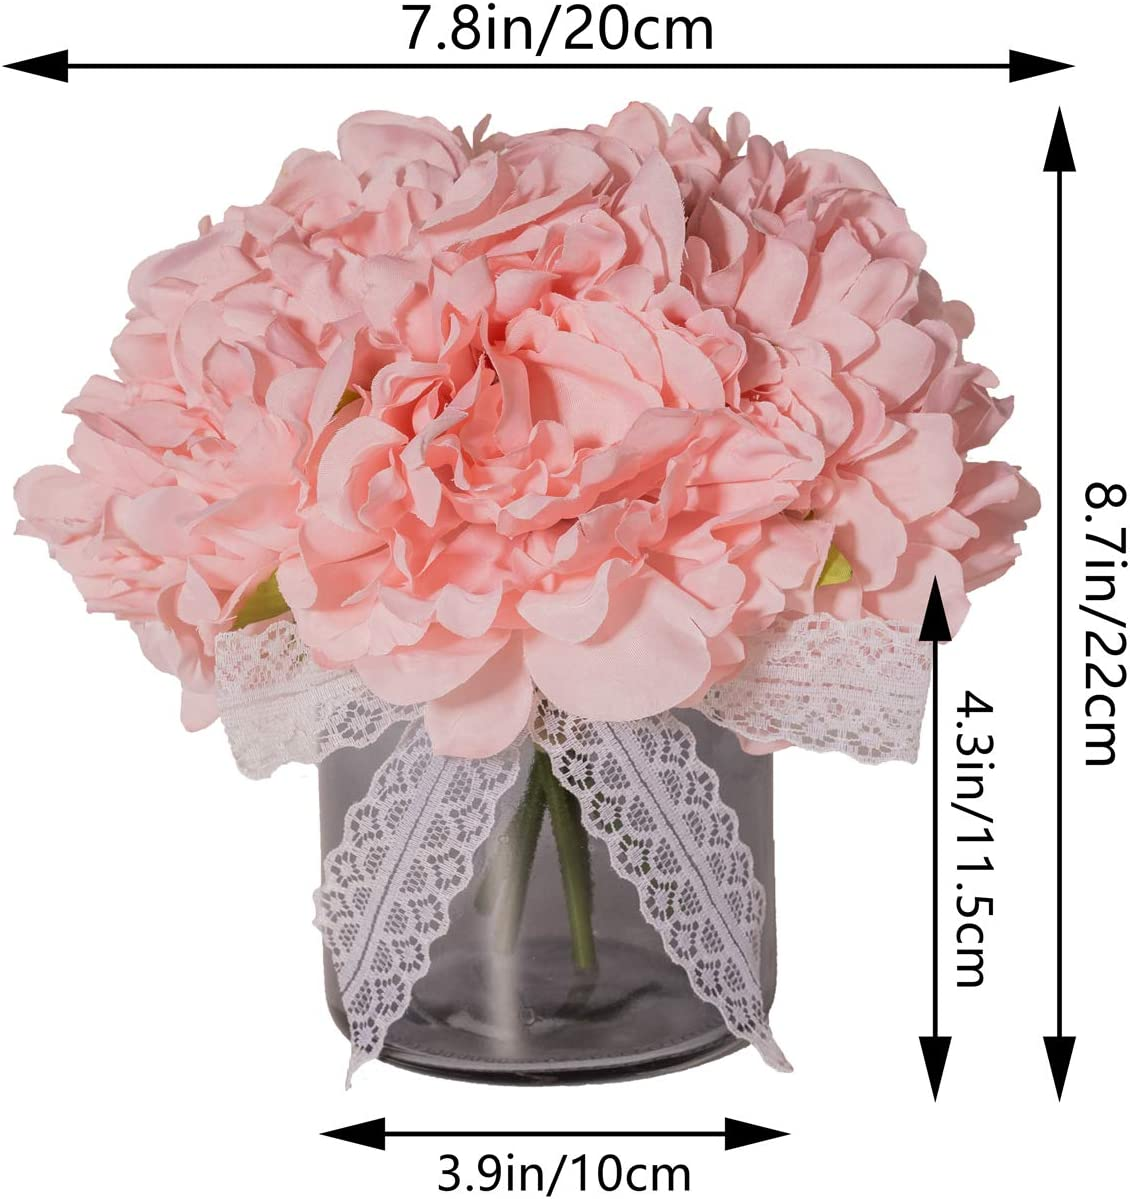 Amazon Com Moonlight Artificial Flowers With Vase Table Decor Fake Peony Flowers In Gray Vase Faux Flower Arrangements For Home Decor Light Pink Small Home Kitchen